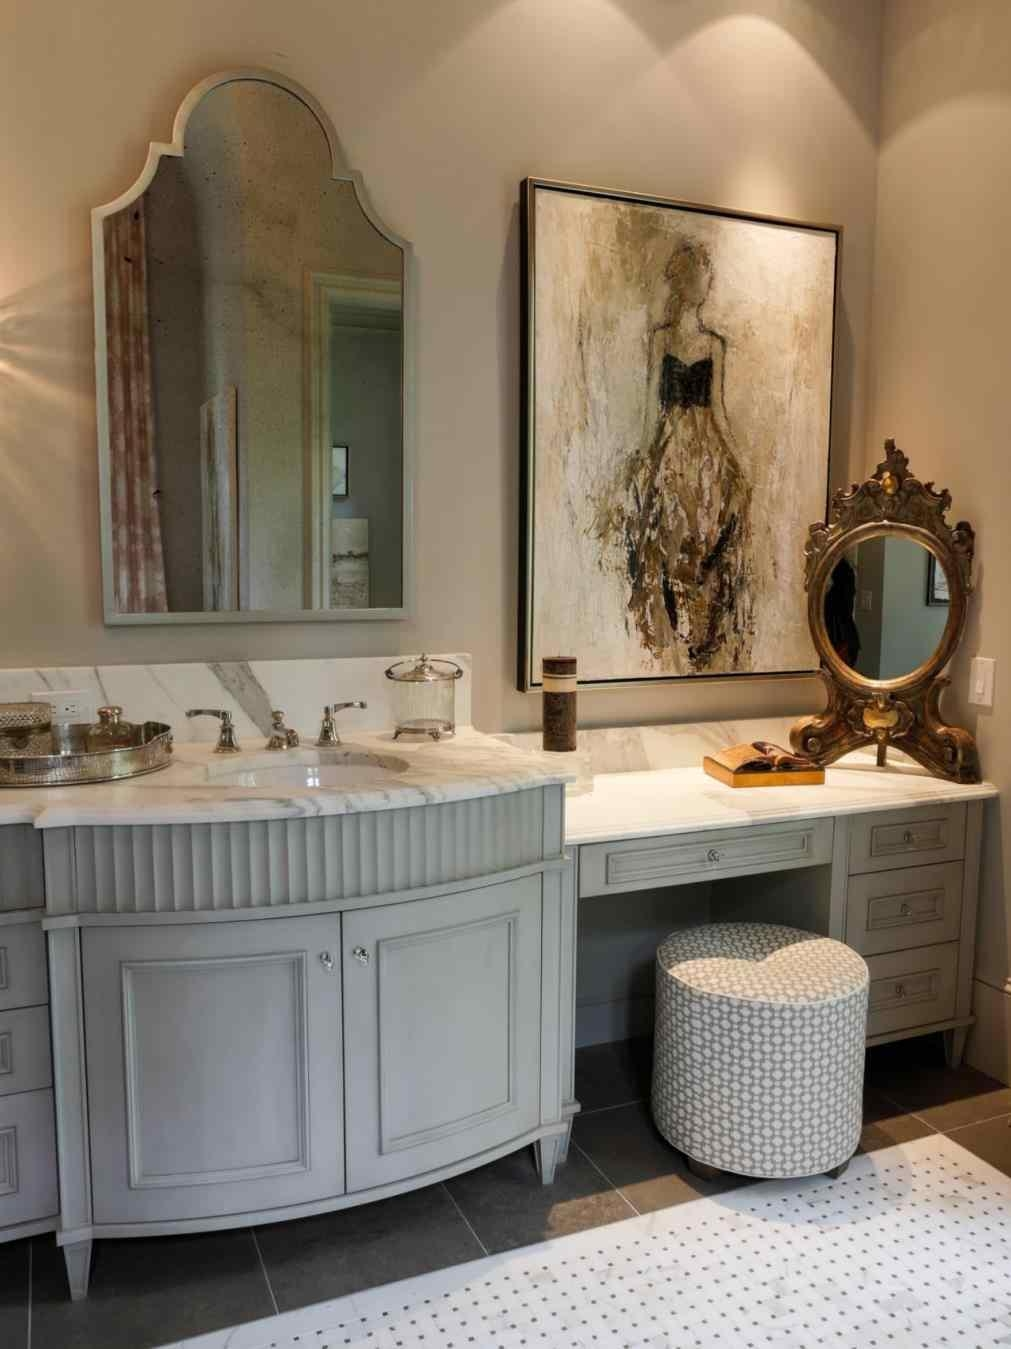 French Country Bathroom Wall Decor | Wpxsinfo In Country French Wall Art (View 18 of 20)